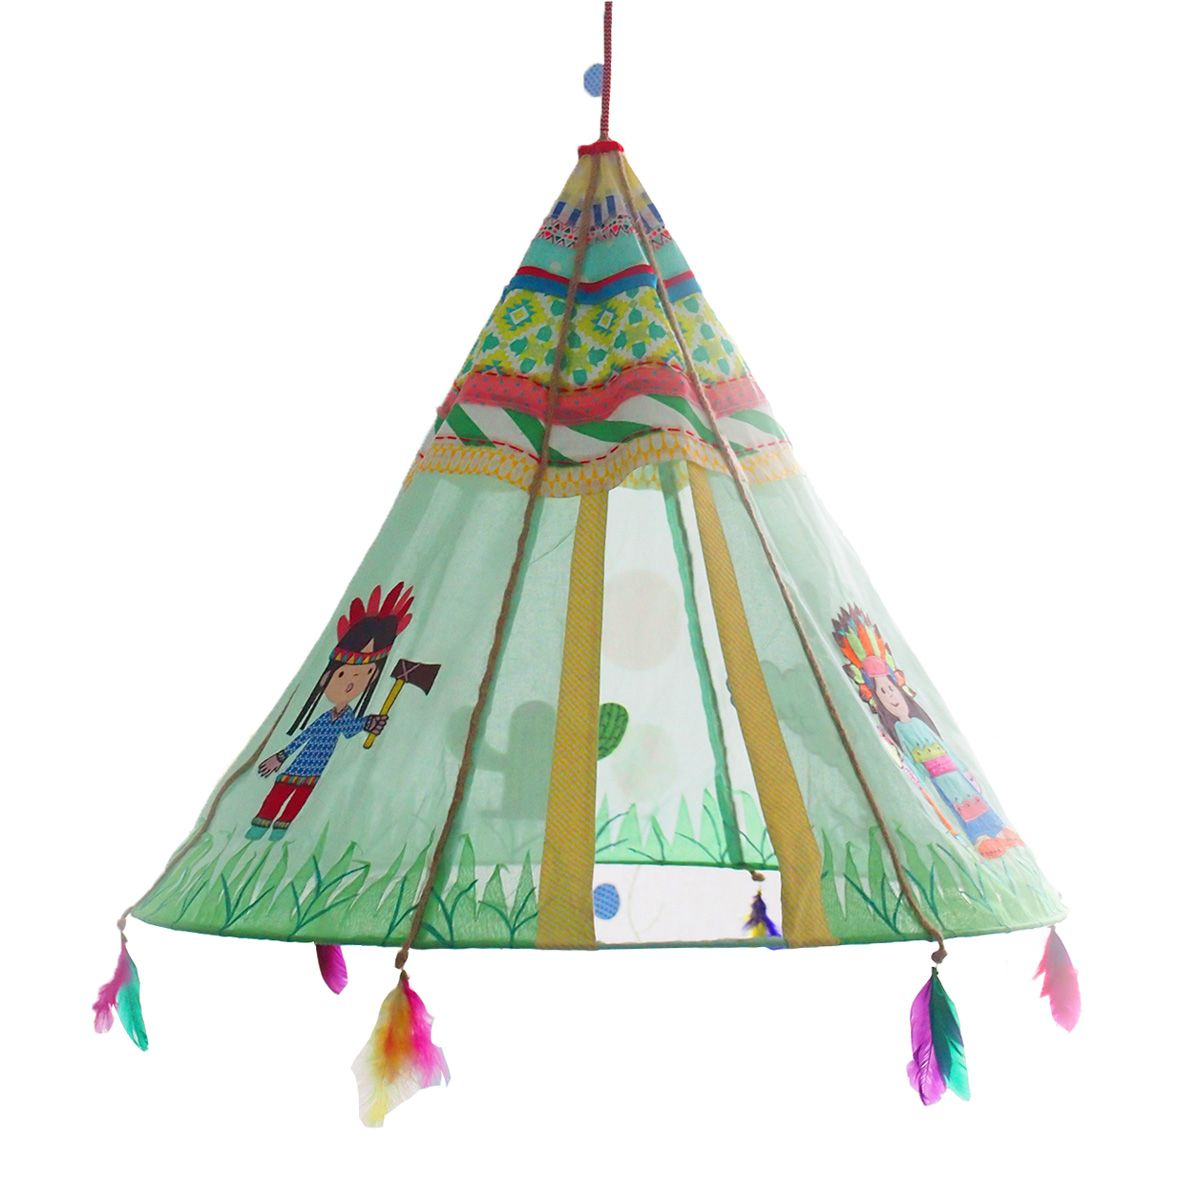 tipi zelt kaufen cool tipi zelte mieten kaufen with tipi zelt kaufen fabulous tcs camping. Black Bedroom Furniture Sets. Home Design Ideas